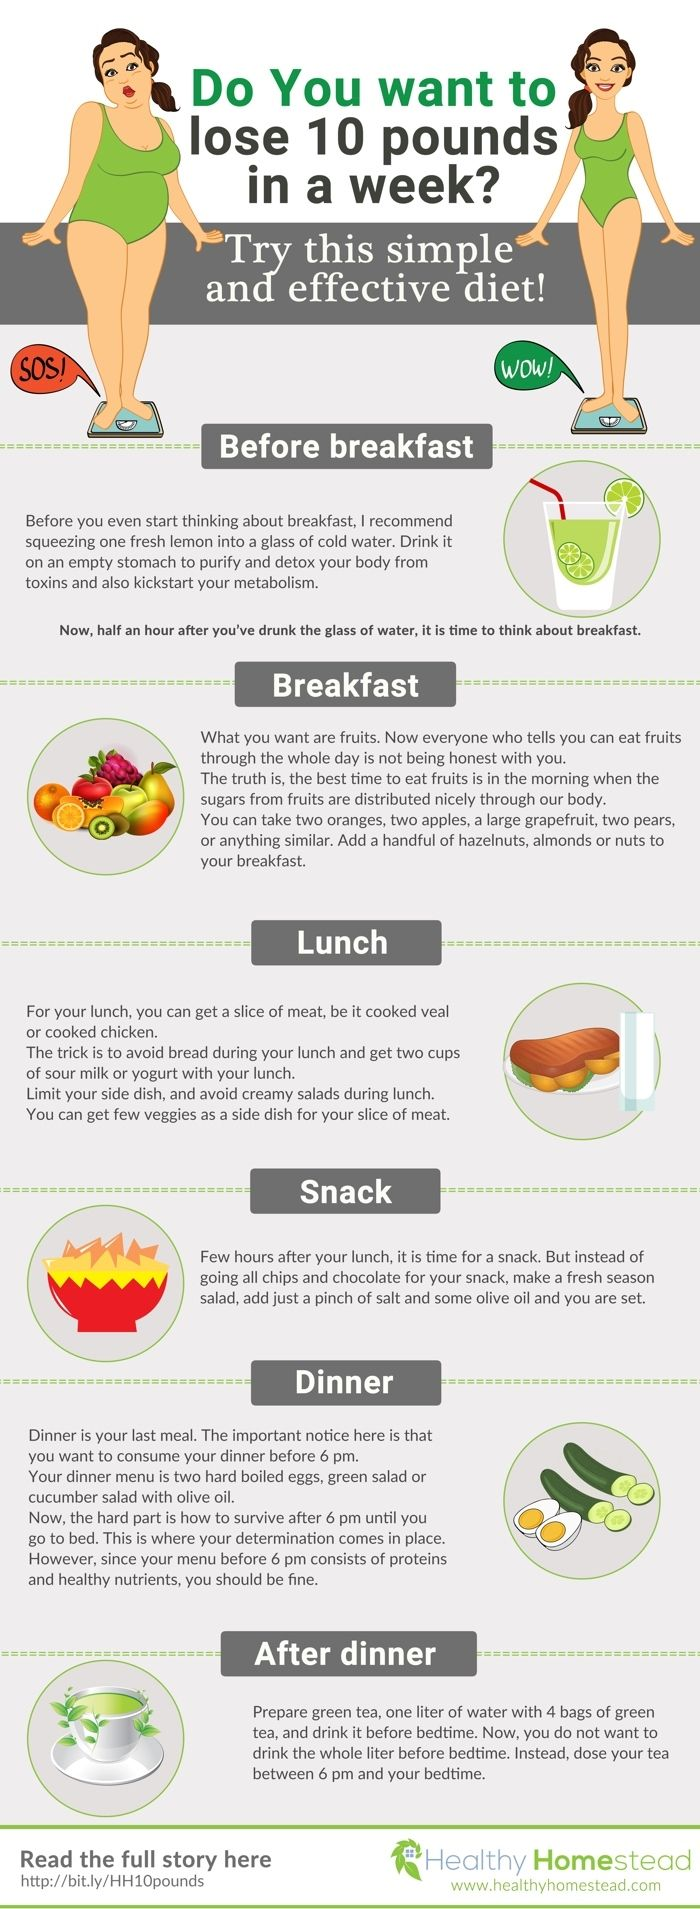 Do You want to lose 10 pounds in a week? Try this simple and effective diet! #totalbodytransformation